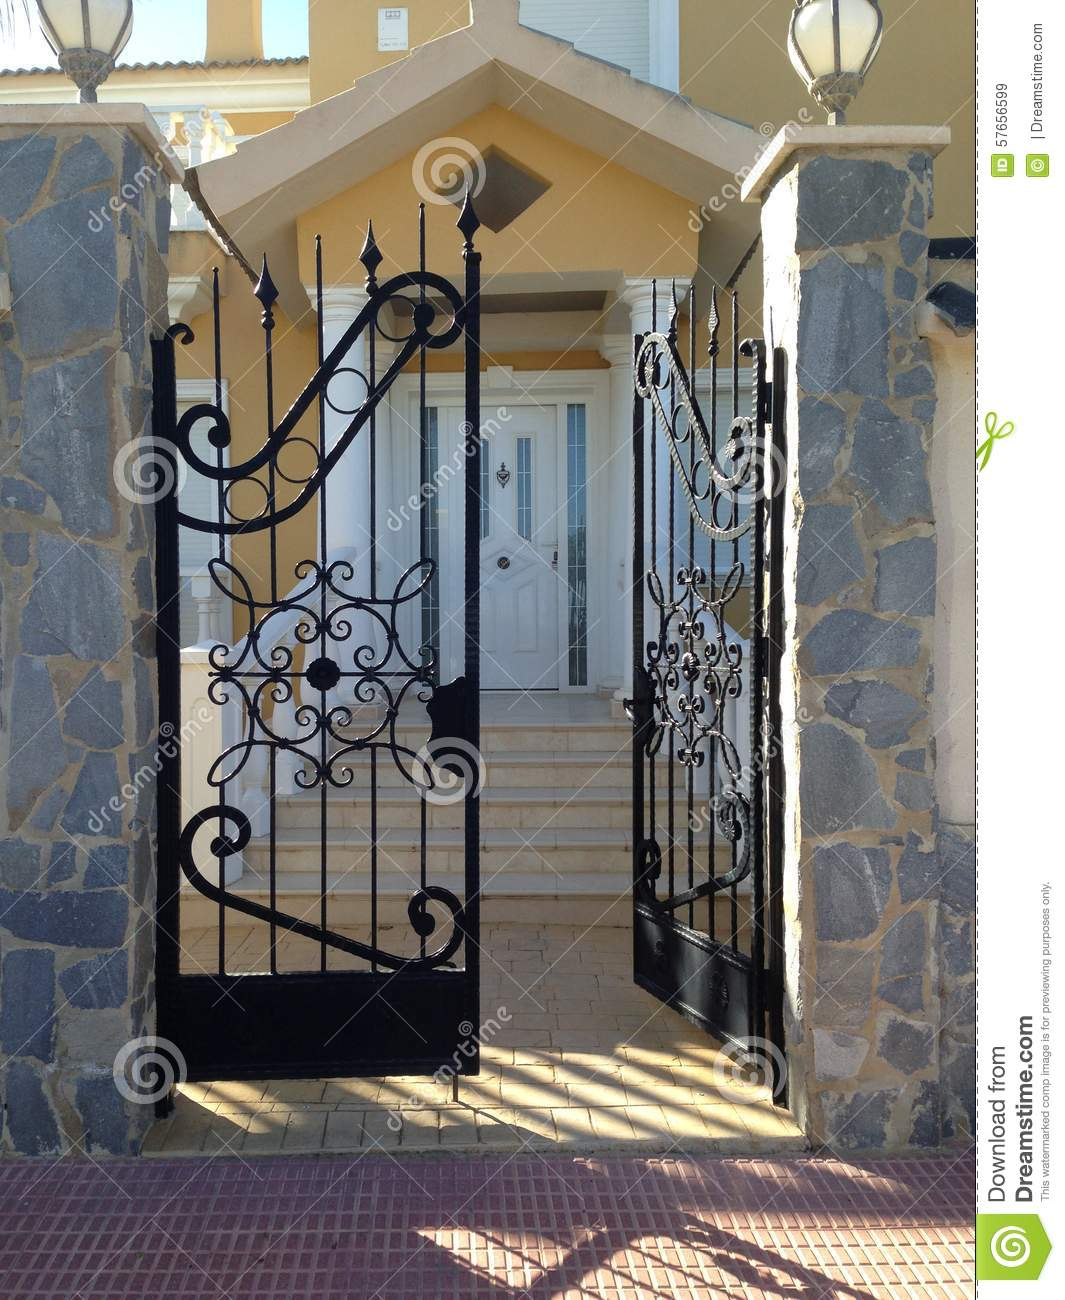 Wrought iron gate stock image image of door iron partly 57656599 wrought iron gate rubansaba